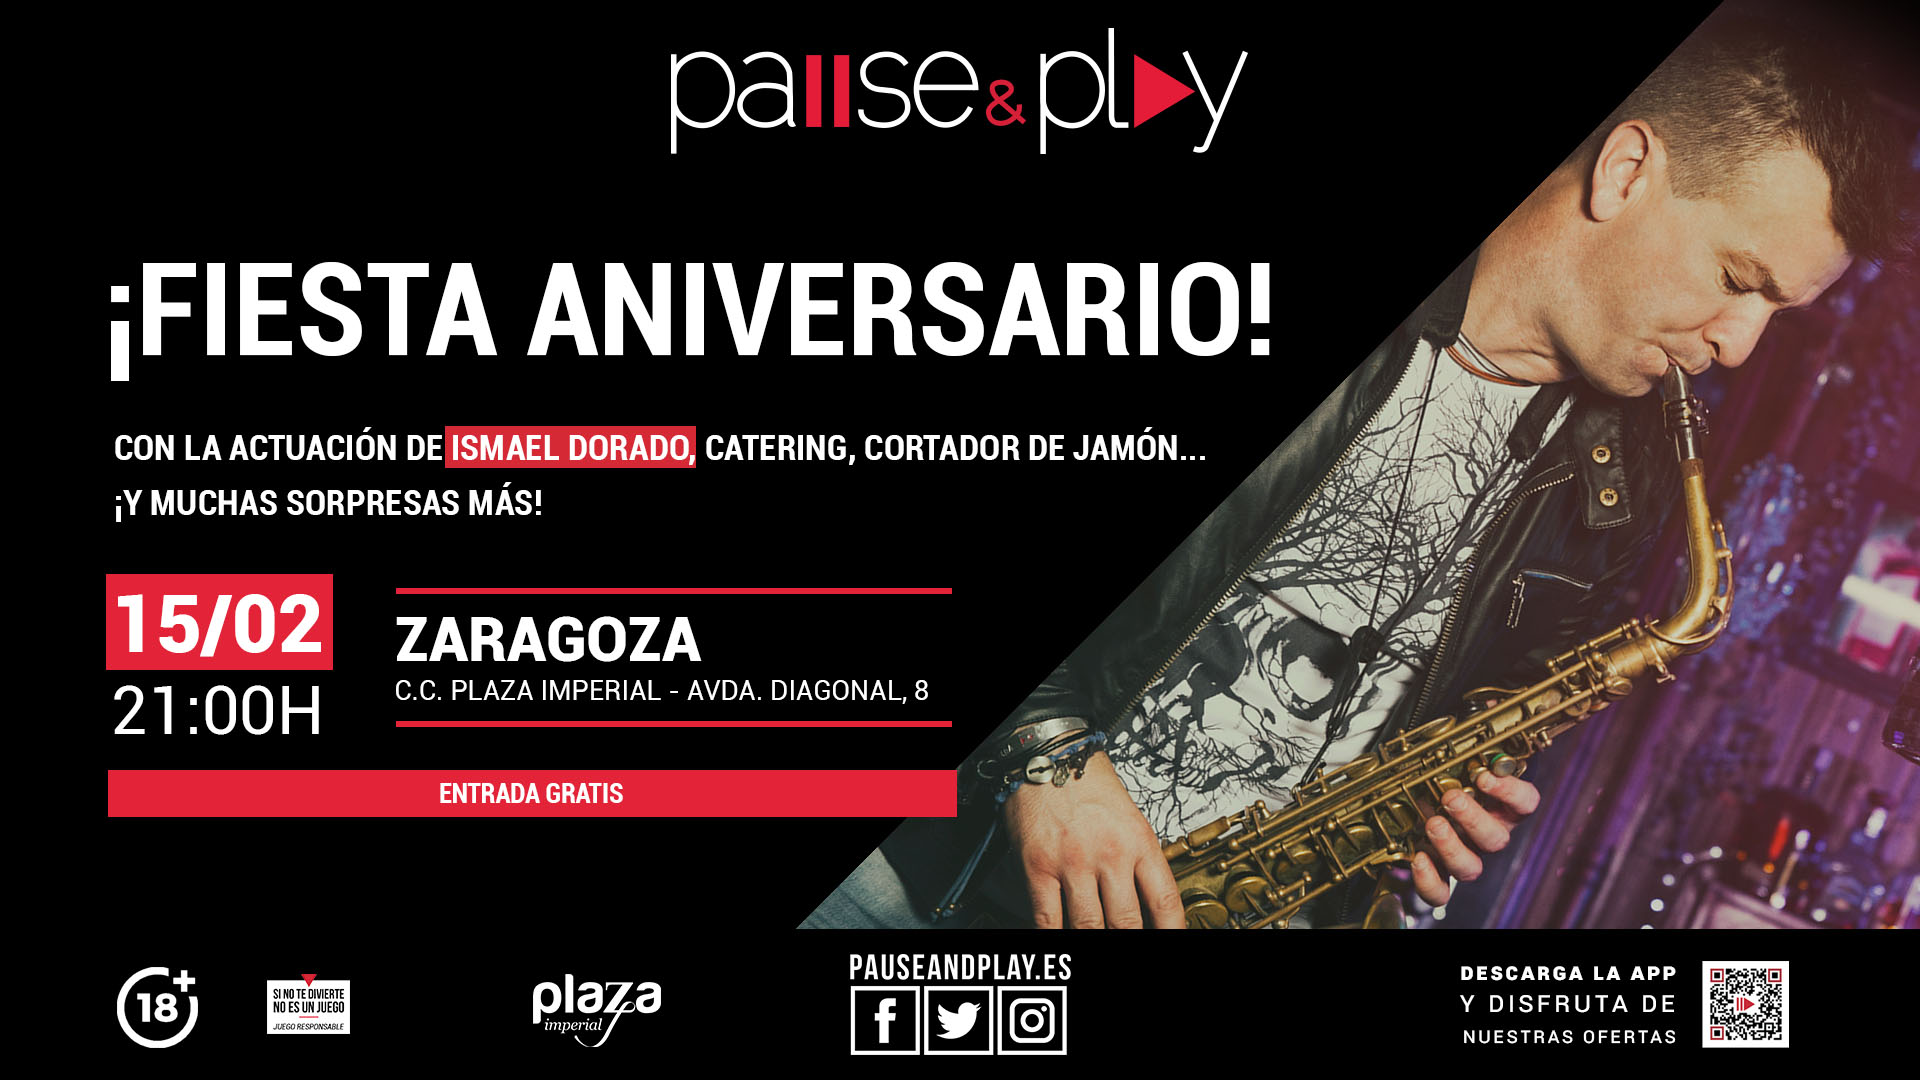 PAUSE&PLAY PLAZA IMPERIAL